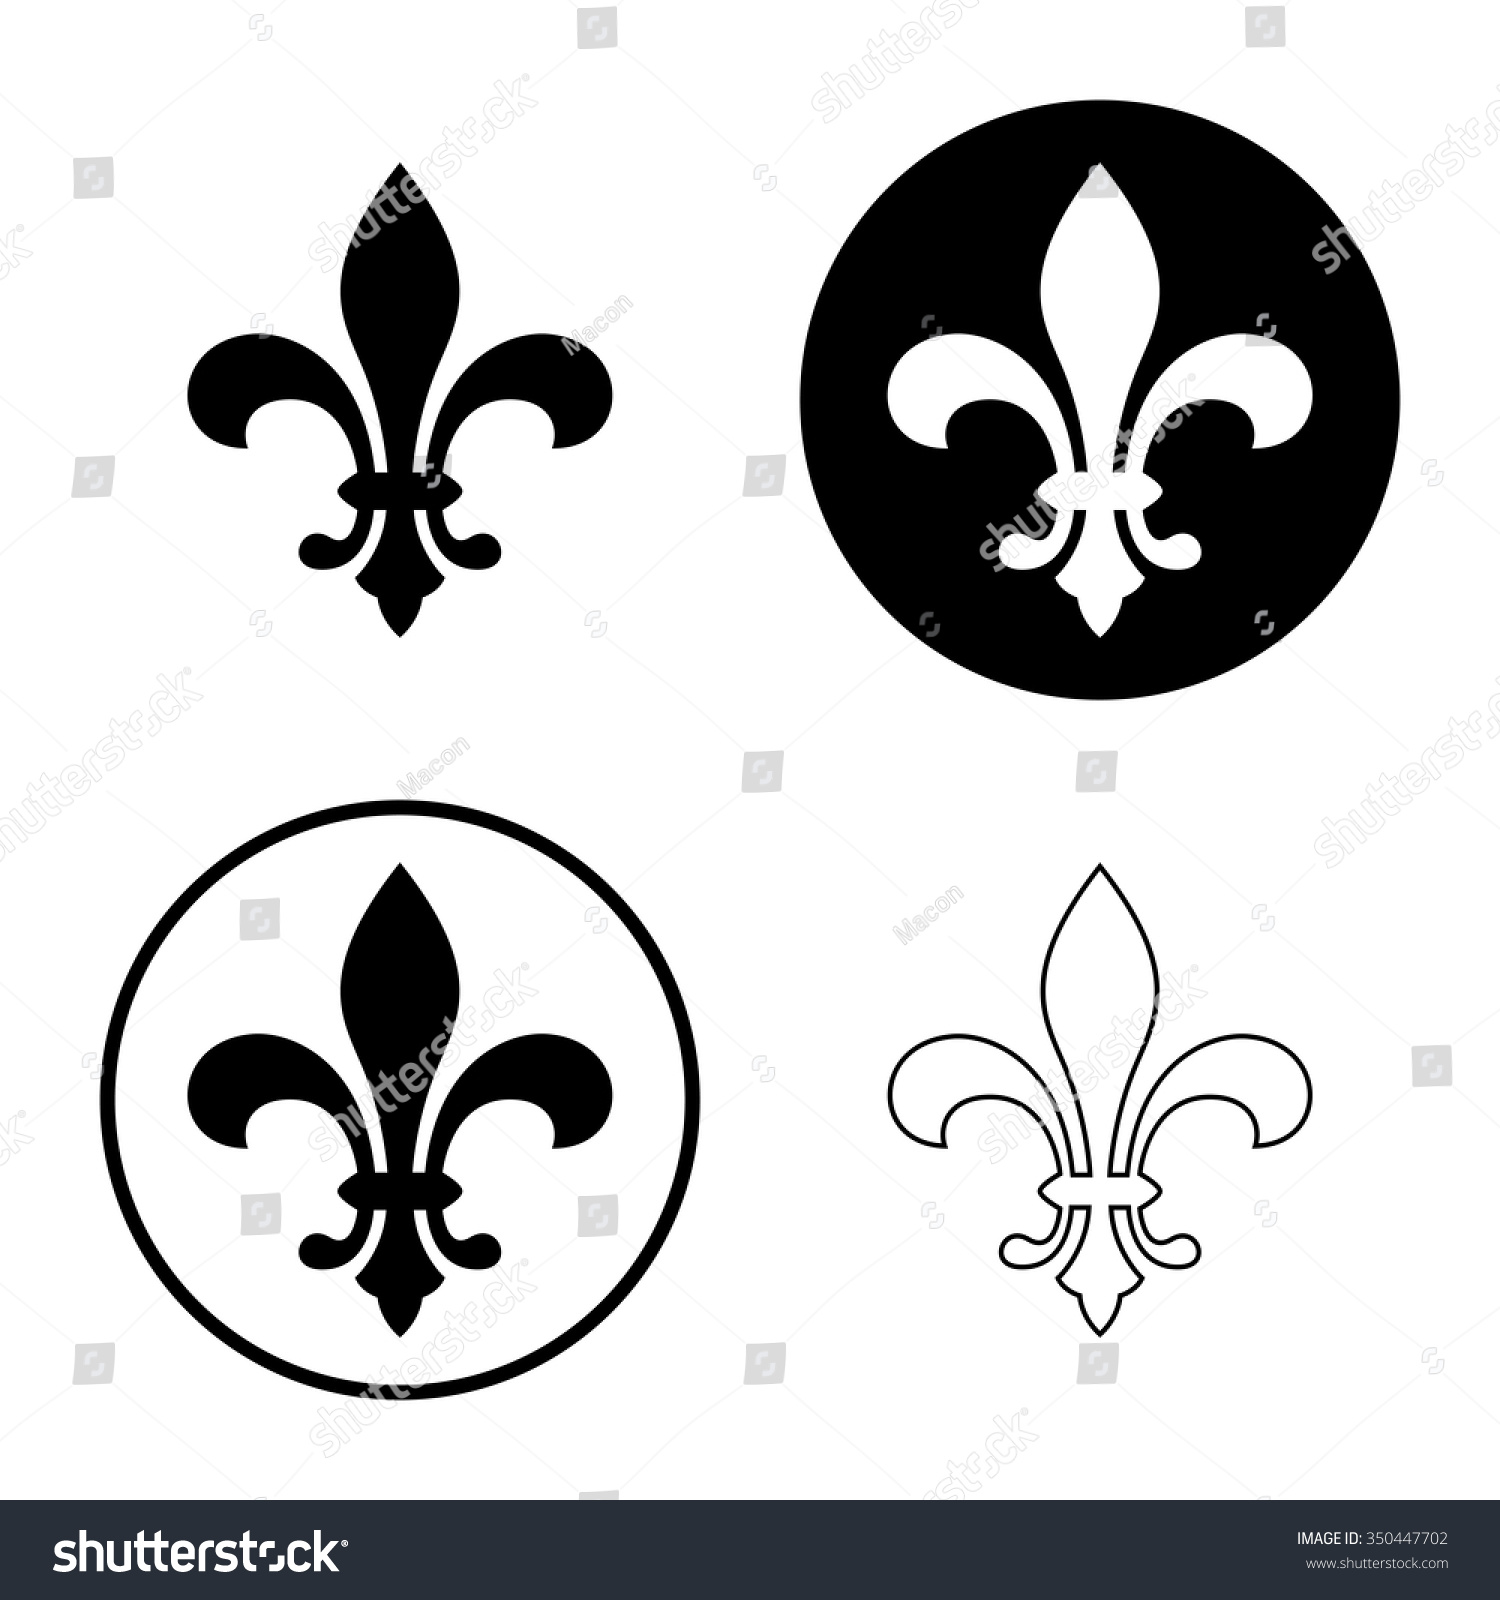 Fleur de lis lily flower icon stock vector royalty free 350447702 fleur de lis or lily flower icon set royal french heraldic symbol isolated on izmirmasajfo